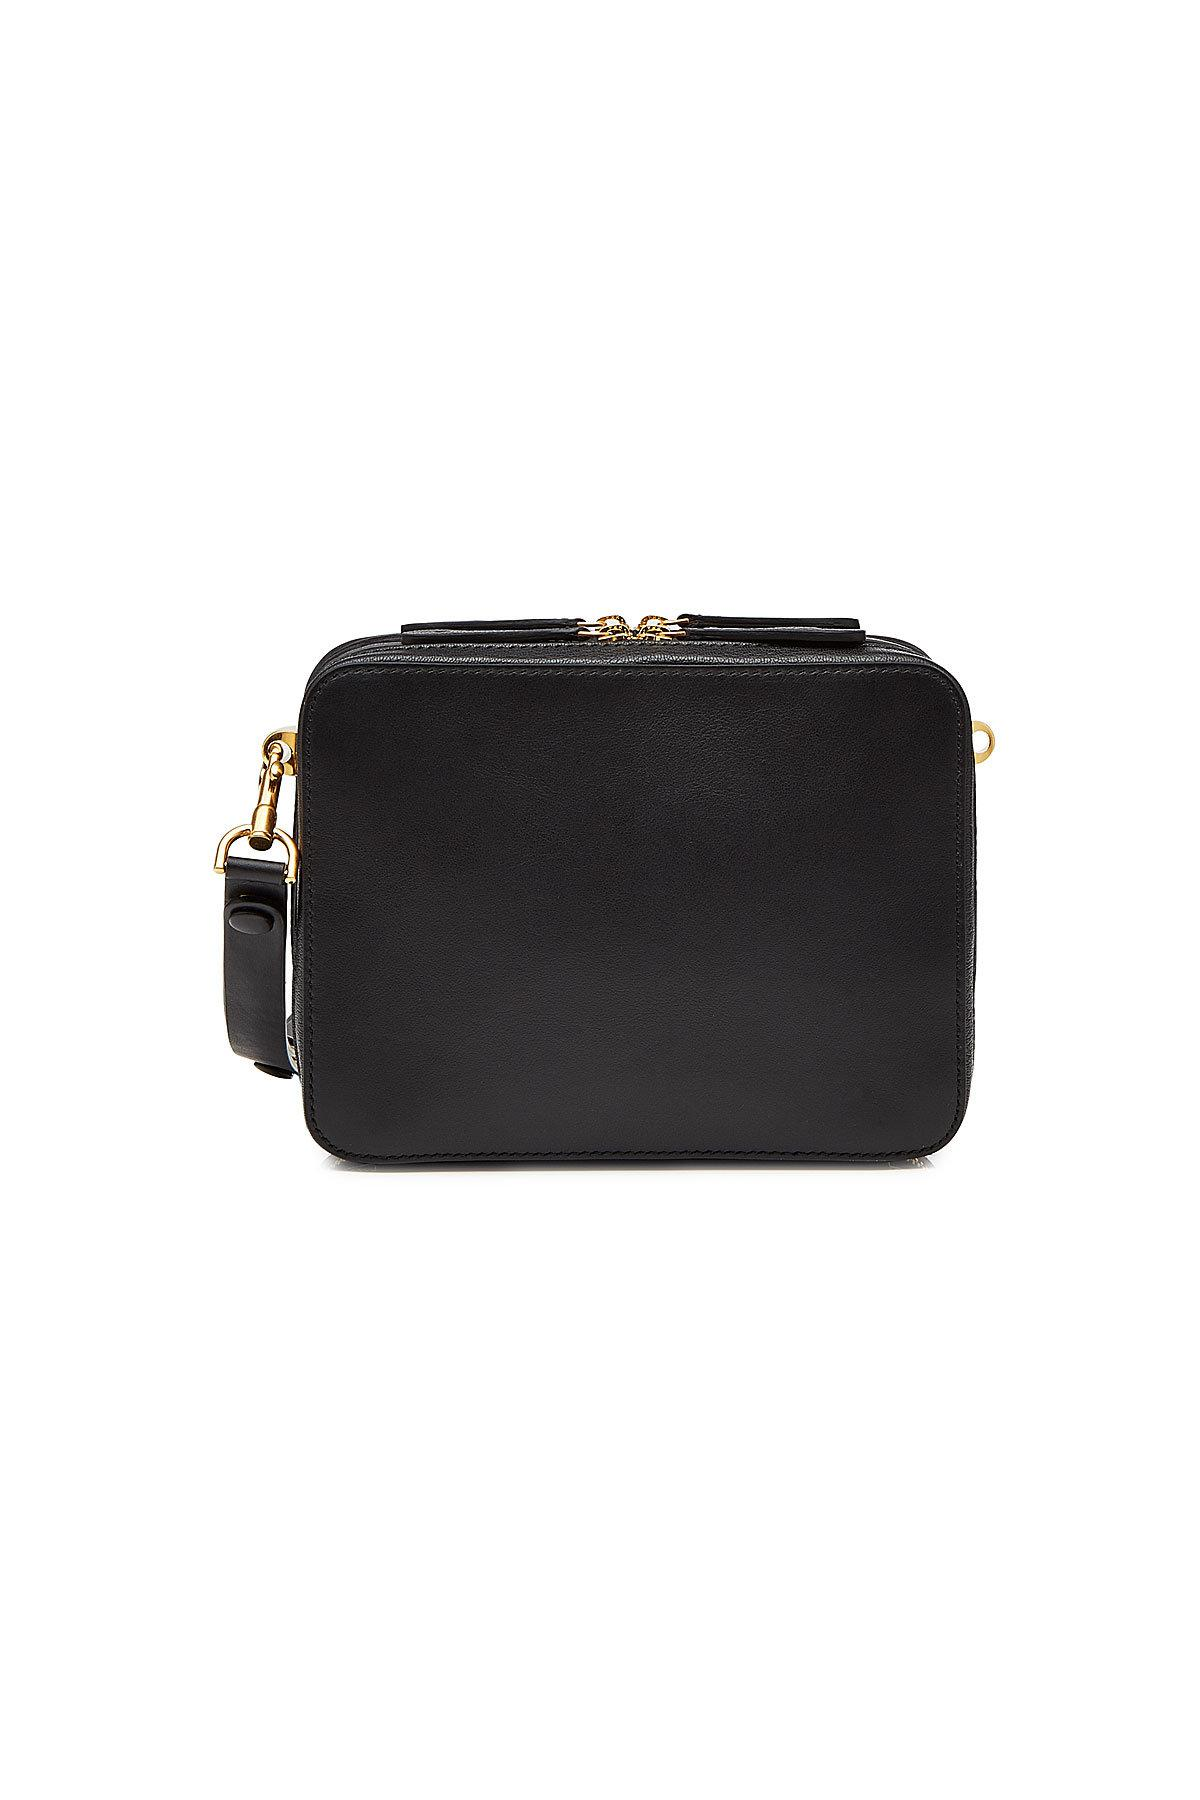 The Stack Double Crossbody Bag in Black Circus Leather Anya Hindmarch E7gfqB3mh